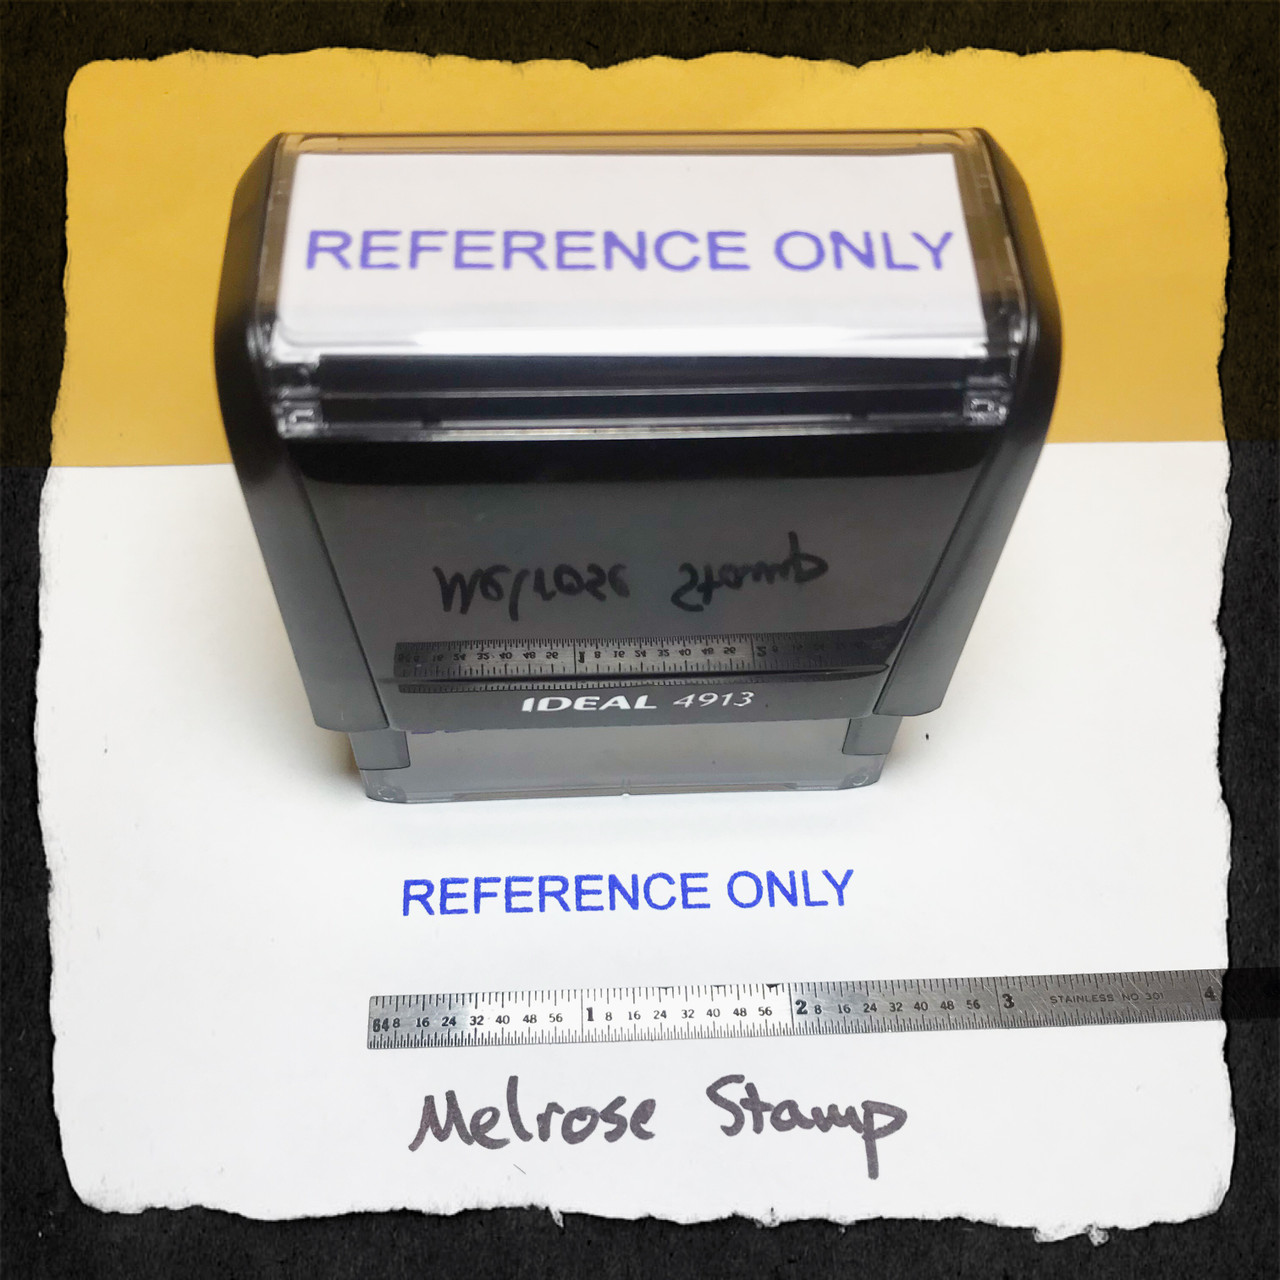 Reference Only Stamp Blue Ink Large